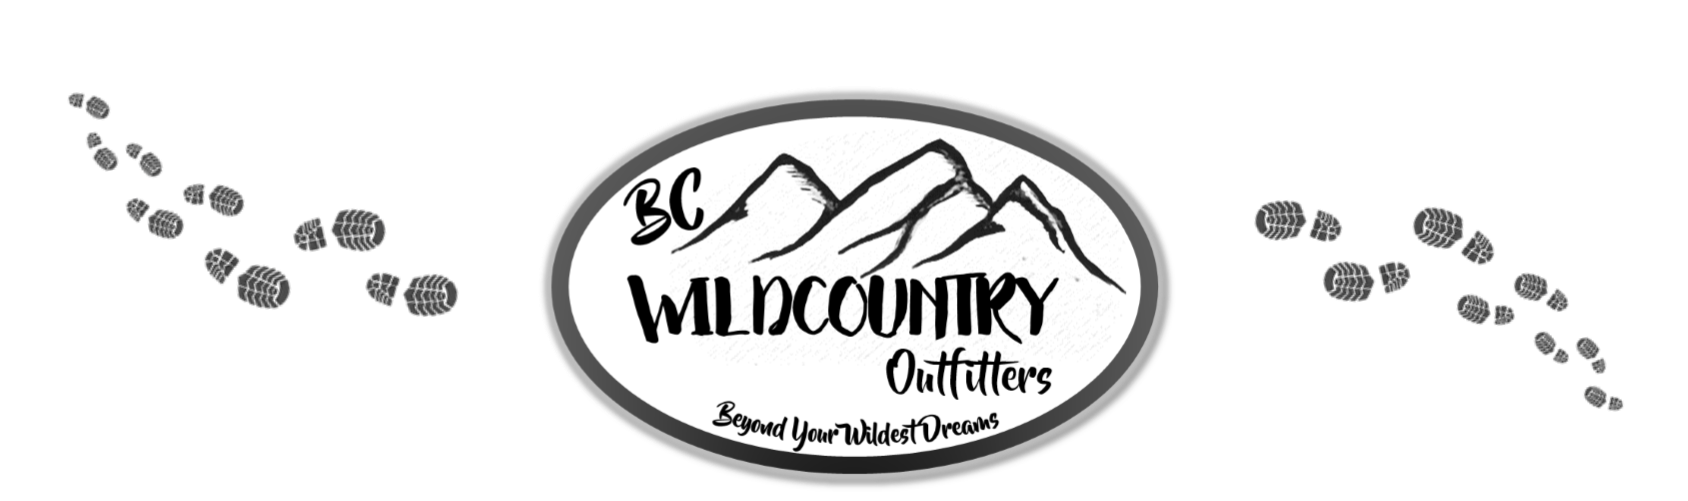 Homepage BC WildCountry Outfitters